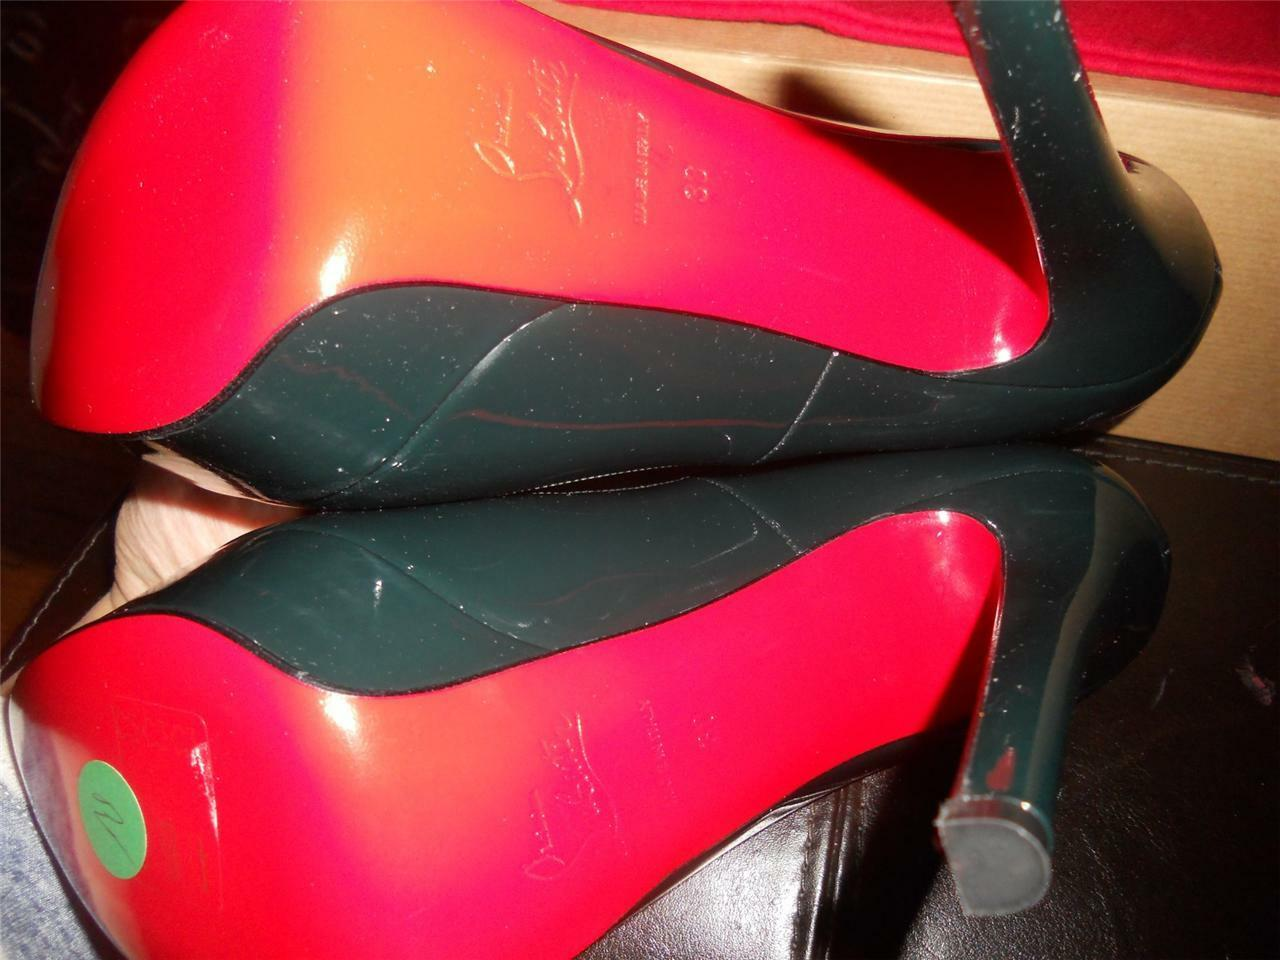 Christian Louboutin white 140 Patent Leather Leather Leather Platform Pump shoes English Green 03c873